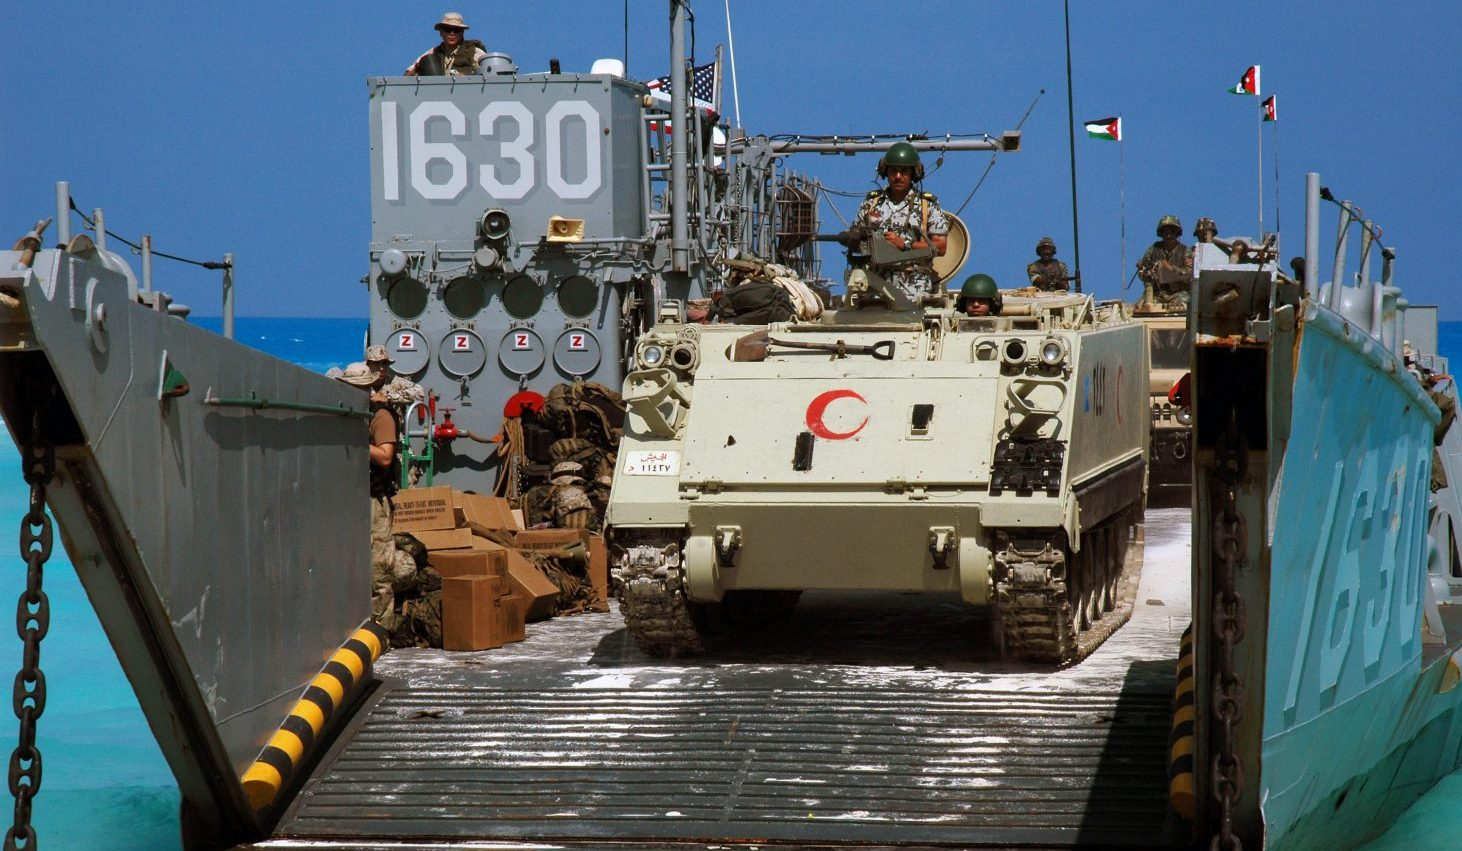 An Egyptian Army M113 Armored Personnel Carrier lead convoy of Royal Jordan Army Vehicles offloading from a US Navy (USN) Landing Craft Utility (LCU-1630) craft assigned to Assault Craft Unit One (ACU-1), on the beach at Mubarek Military City, Egypt, in preparation for an amphibious assault landing demonstration in support of Exercise BRIGHT STAR 2005. The exercise is an important part of US Central CommandÕs (USCENTCOM) theater engagement strategy and is designed to improve readiness, interoperability, strengthen the military and professional relationships among participating forces.